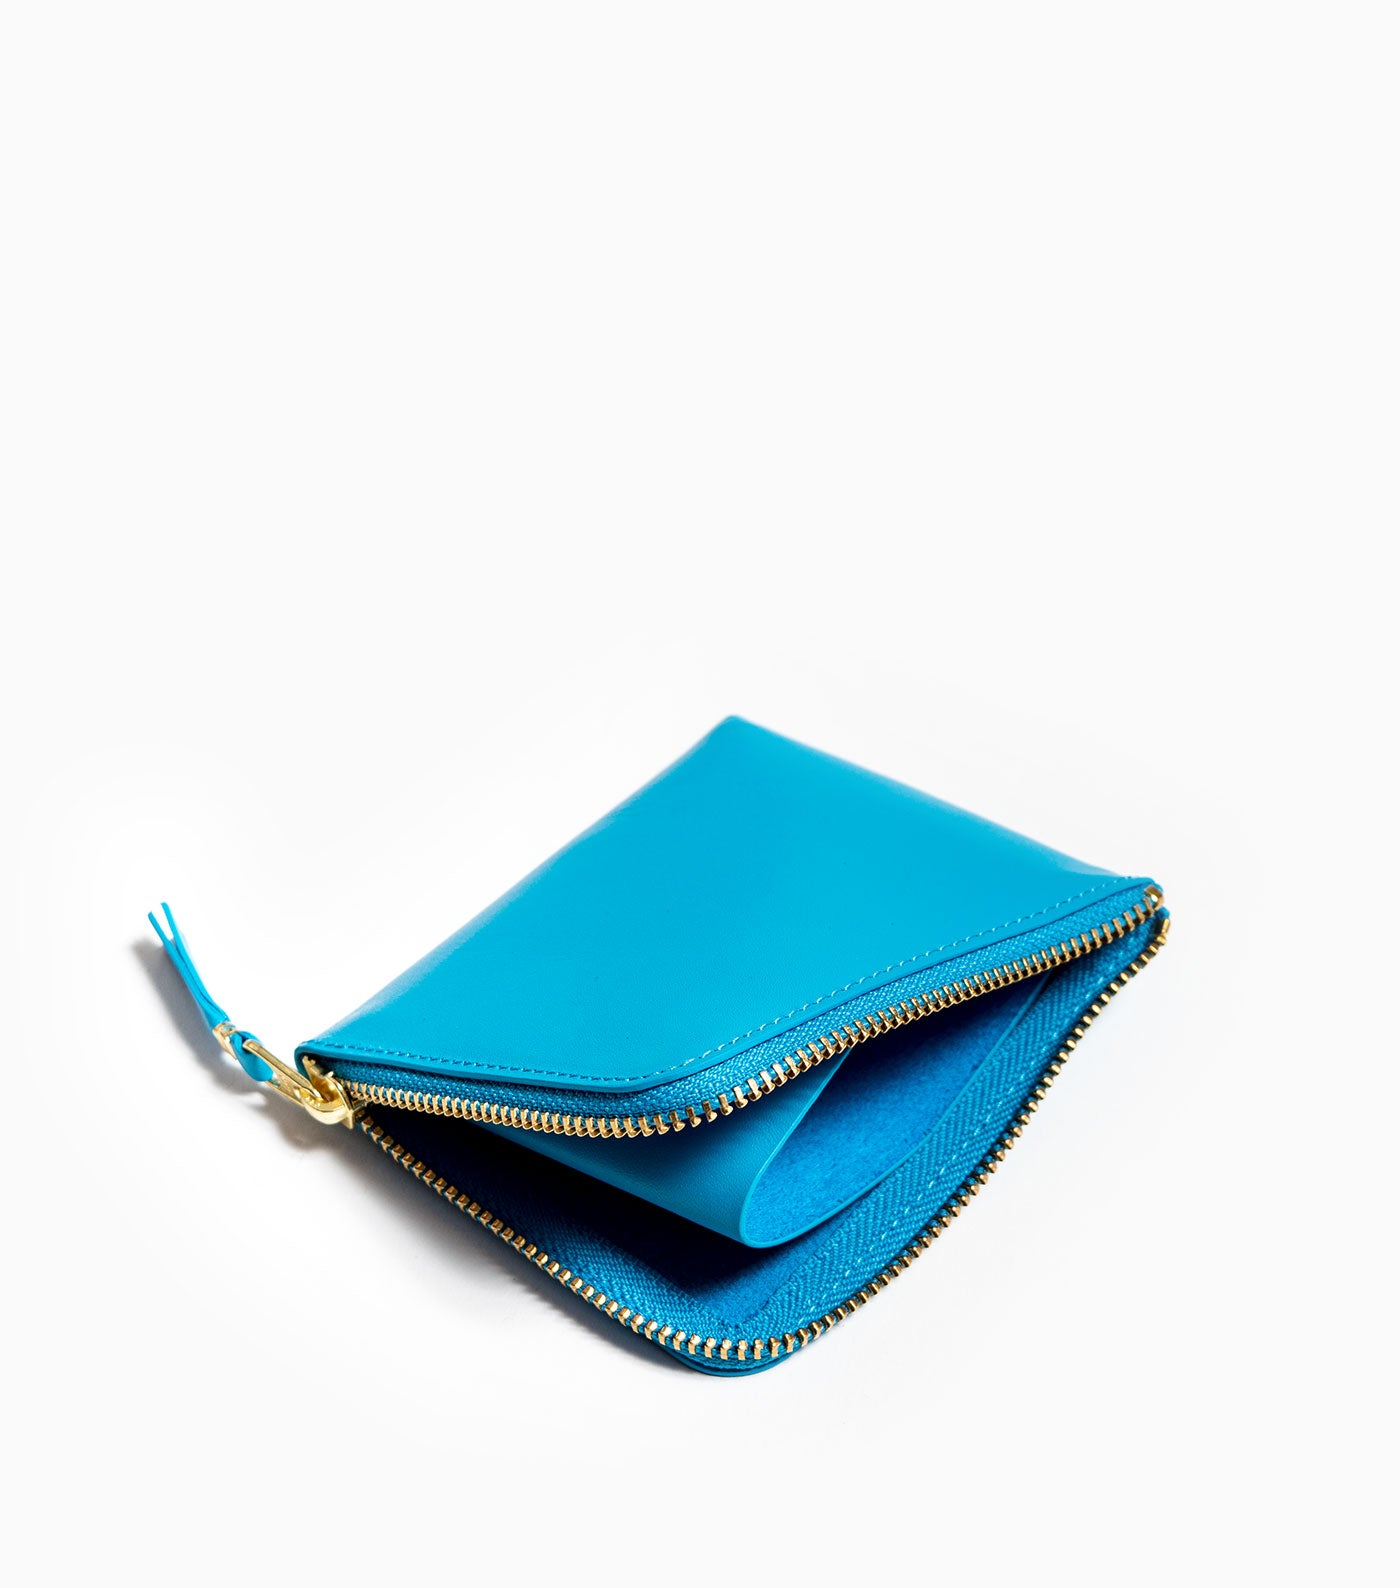 Comme des Garçons Classic Leather Wallet SA3100 - Blue Wallet - CARTOCON